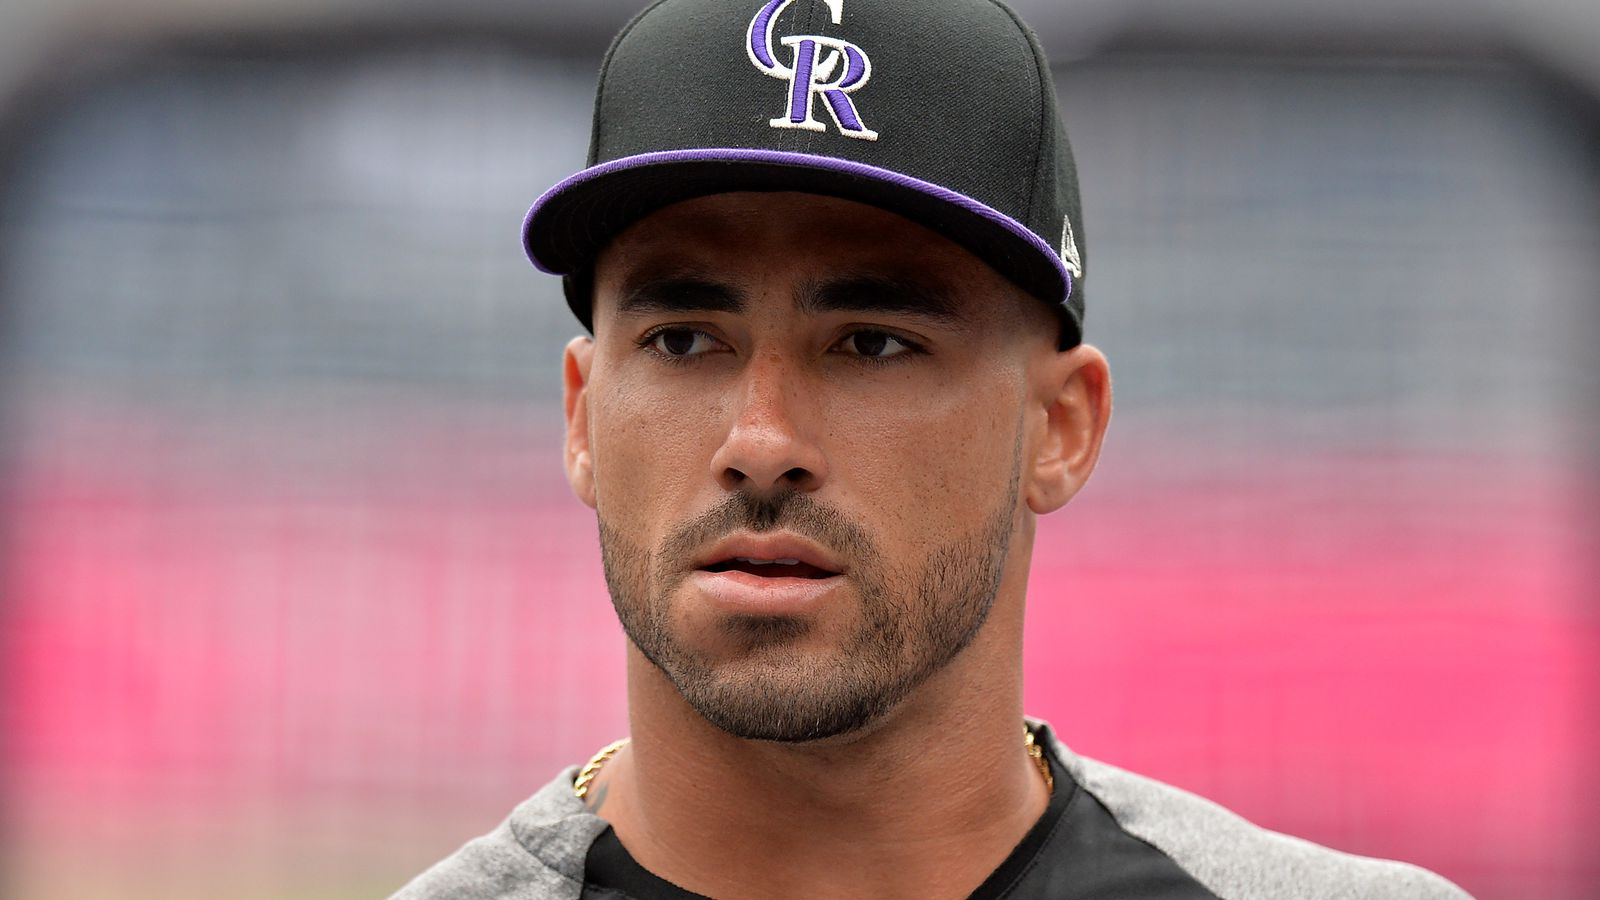 ian desmond - photo #15